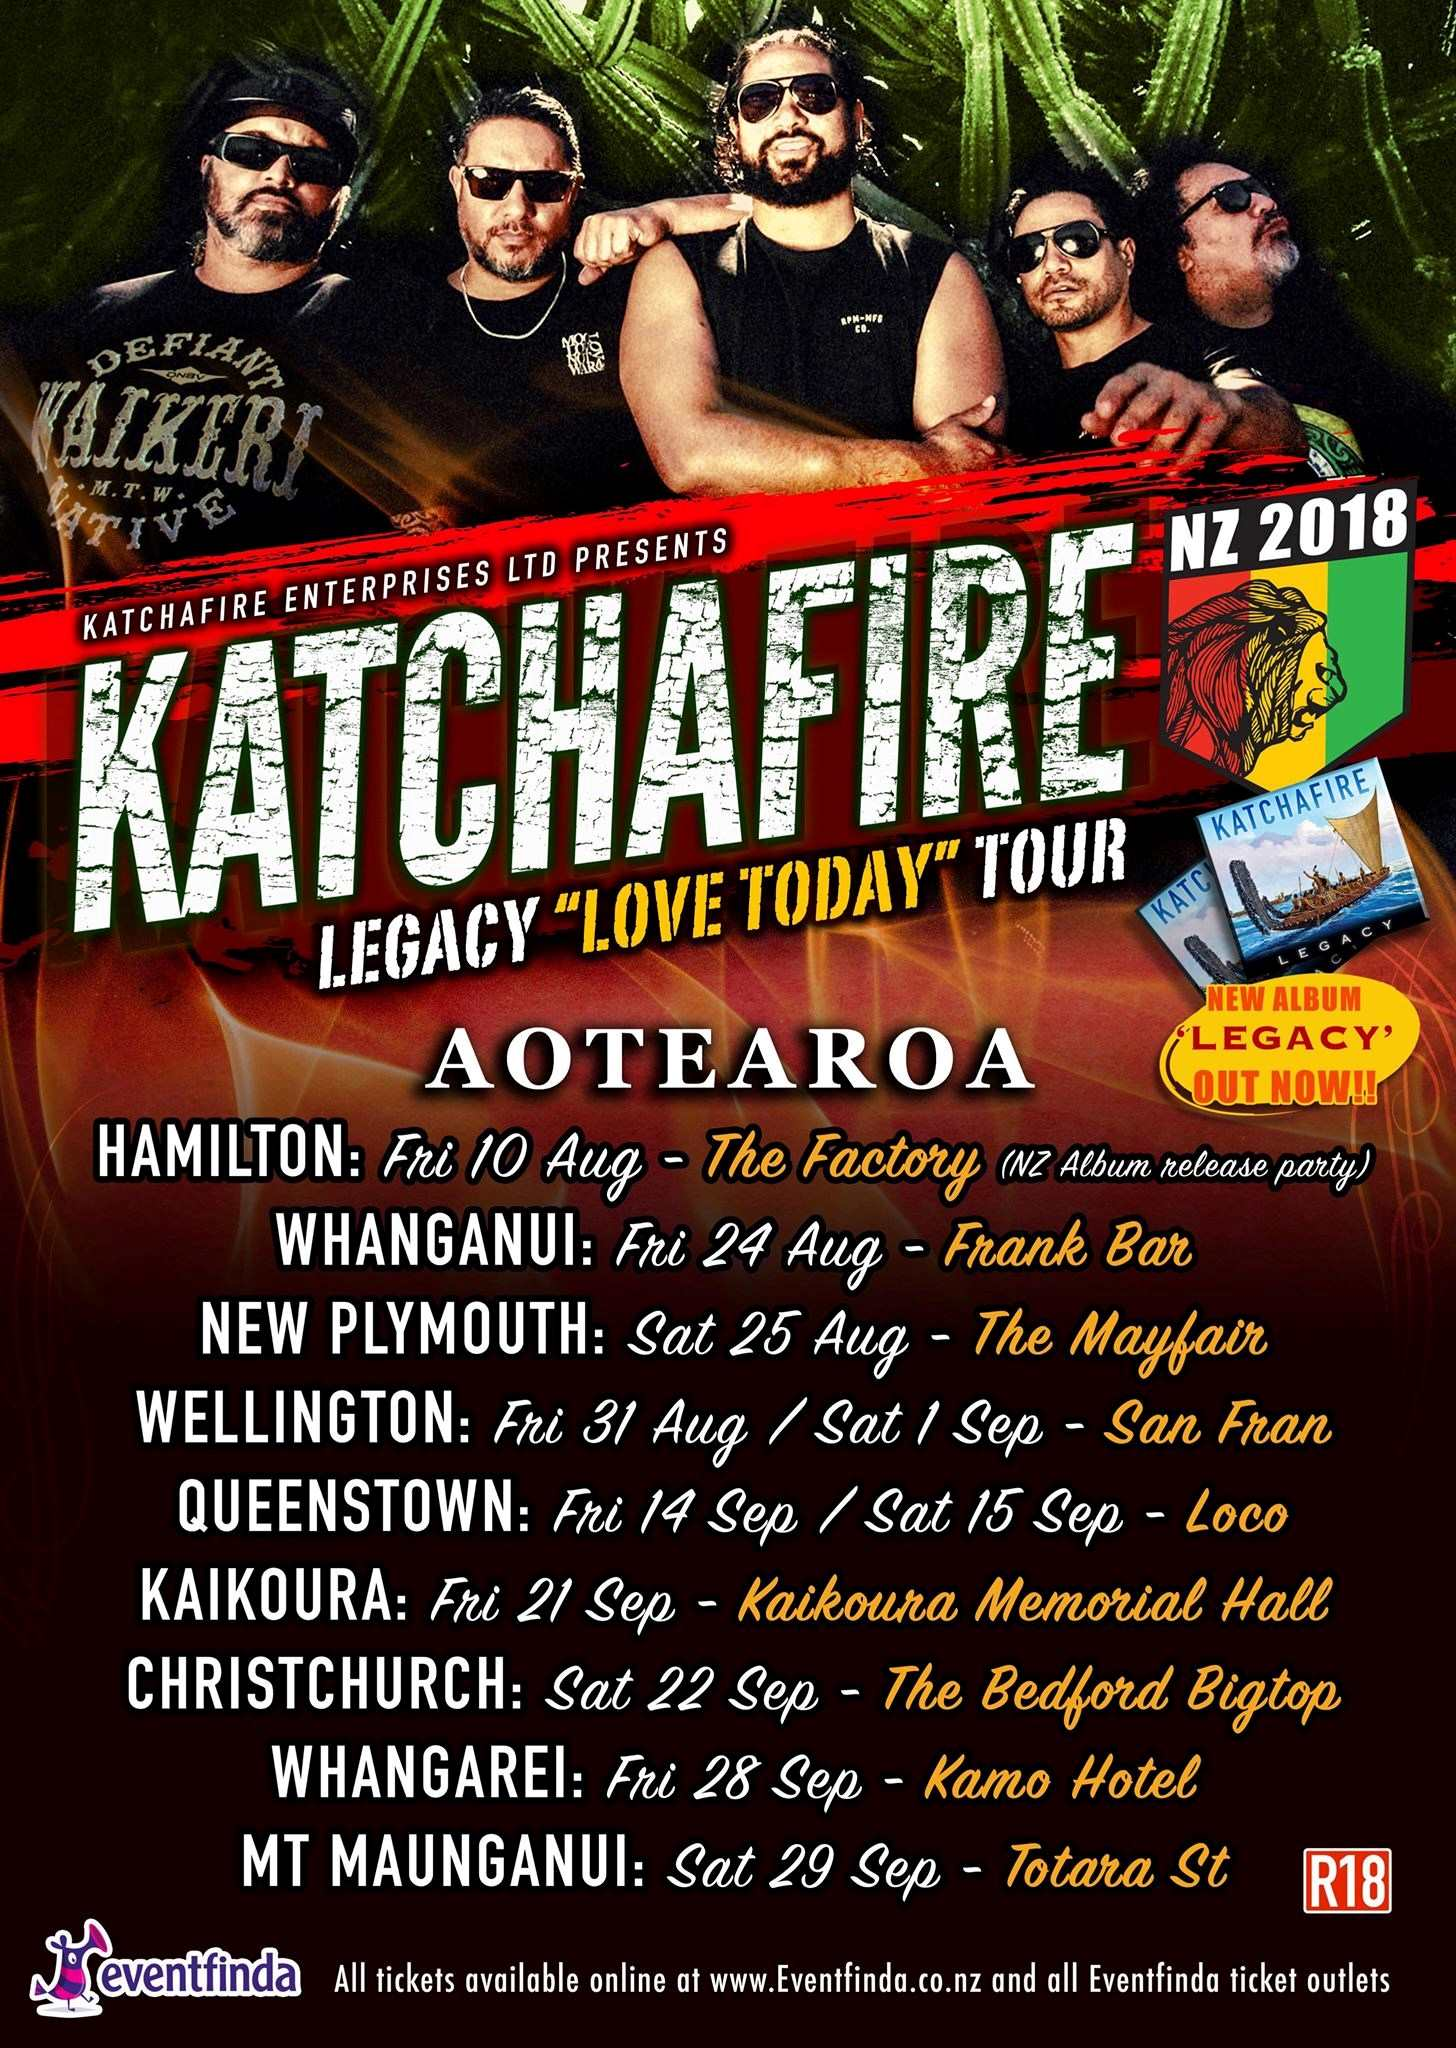 Katchafire NZ Legacy Tour - All Dates V3.jpg